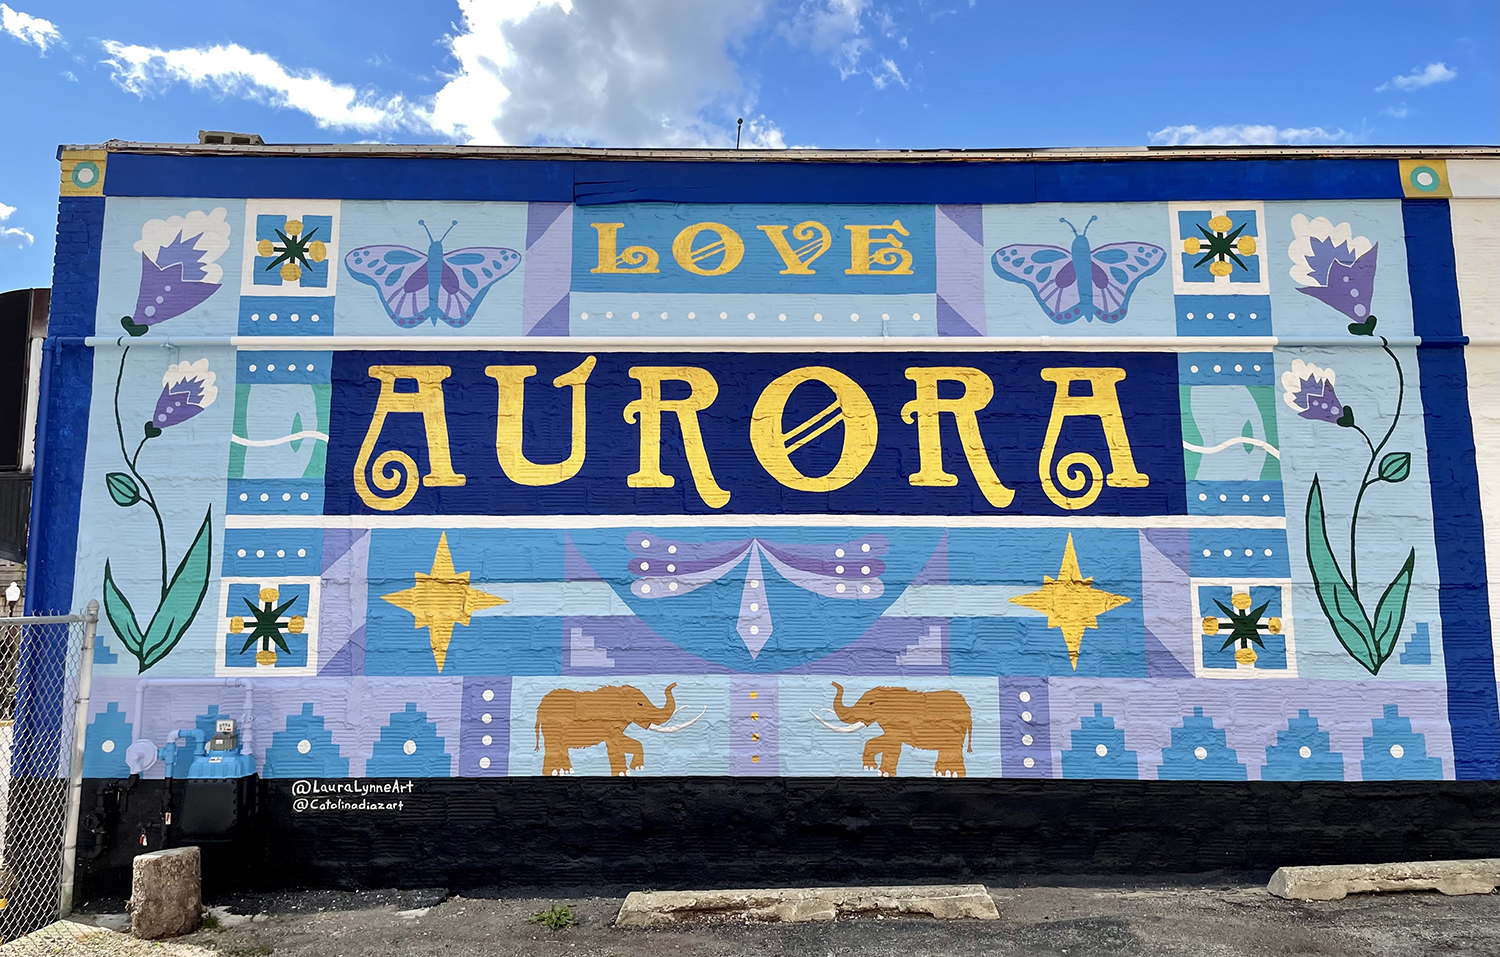 public community mural sign painting in aurora illinois by laura lynne art